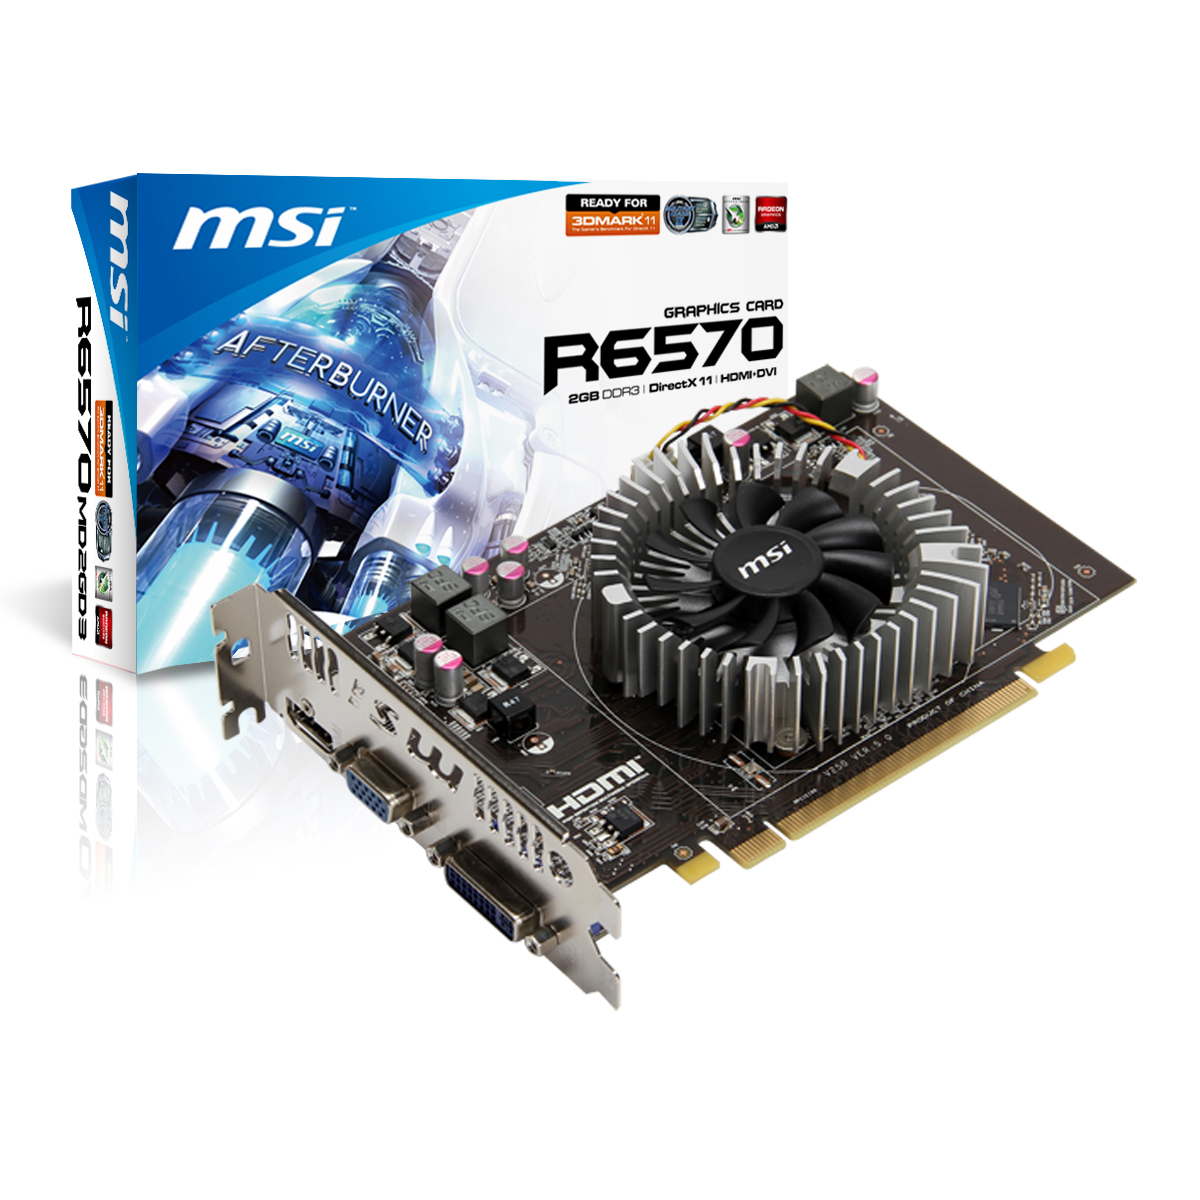 Carte graphique MSI R6570-MD2GD3 2 Go 2 Go HDMI/DVI - PCI Express (AMD Radeon HD 6570)